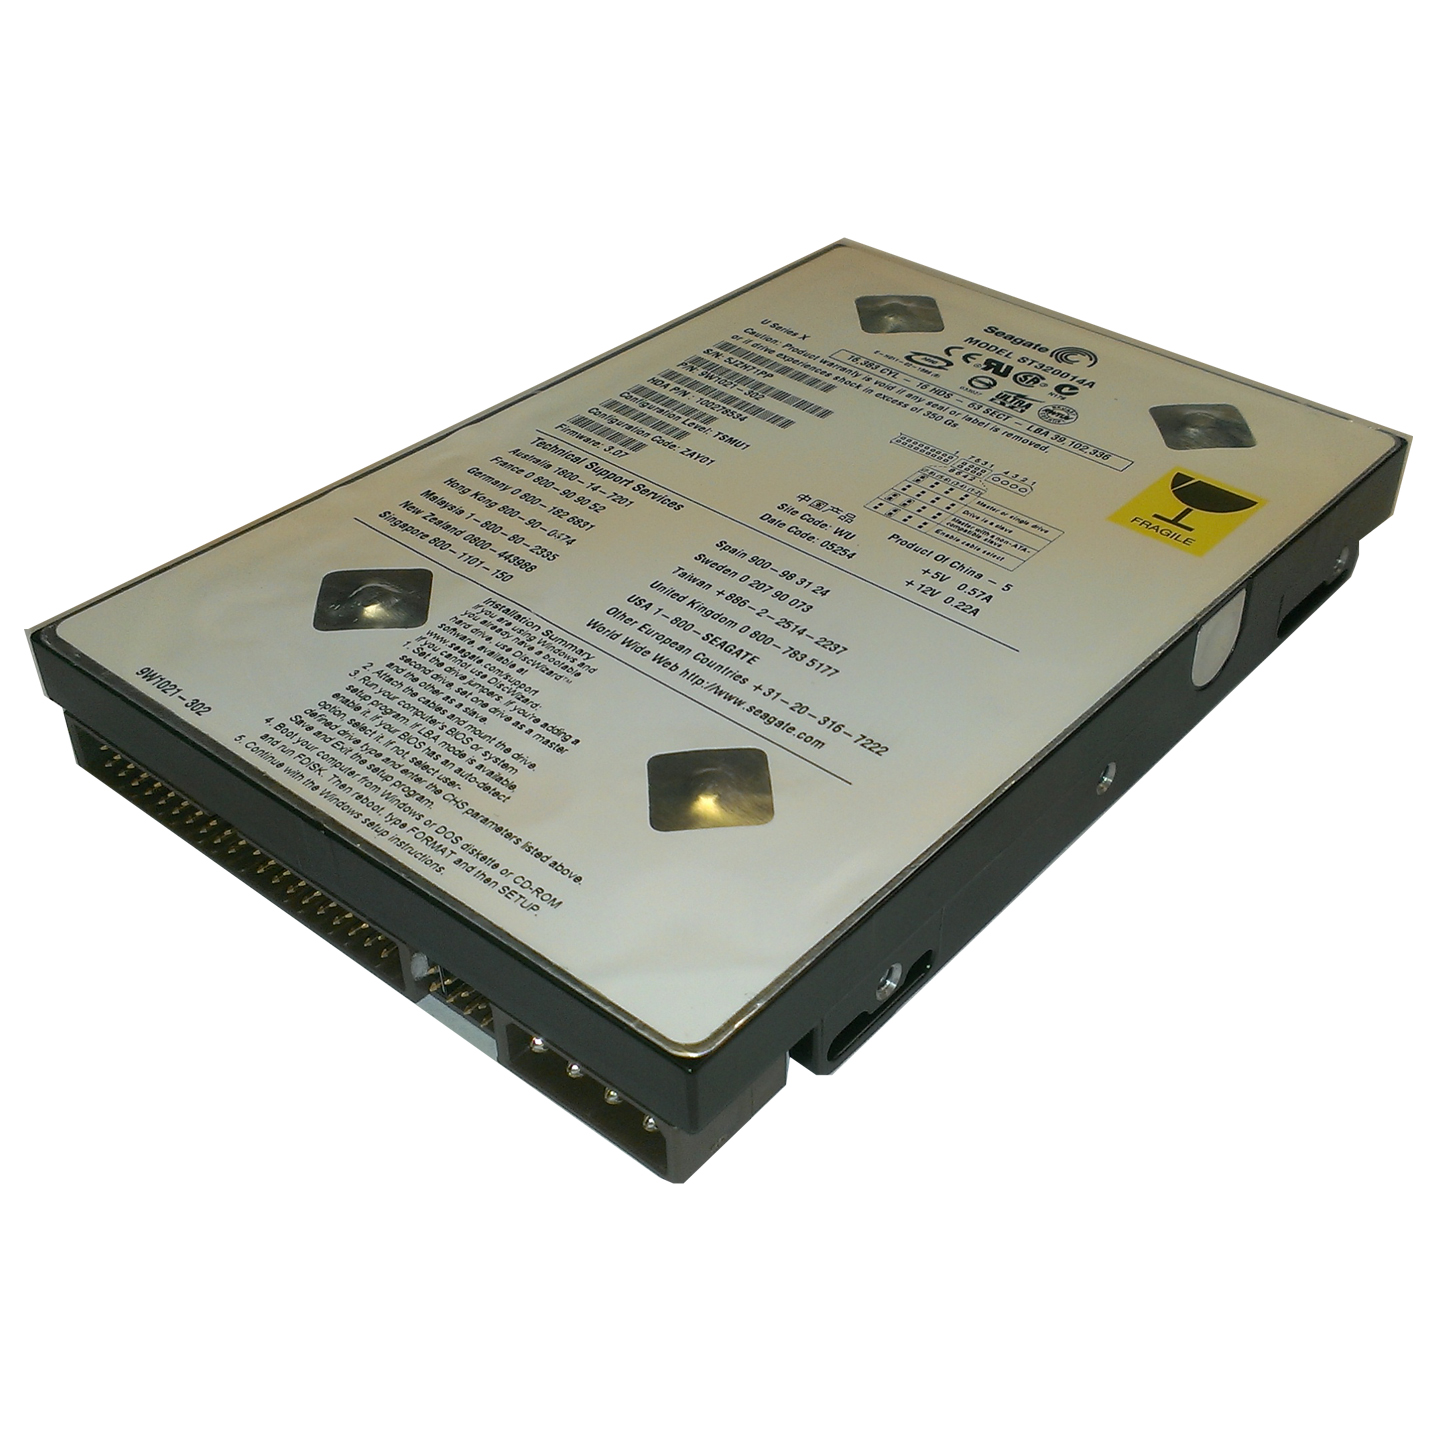 3Com NBX V3000 Analog Replacement Hard Disk FRU